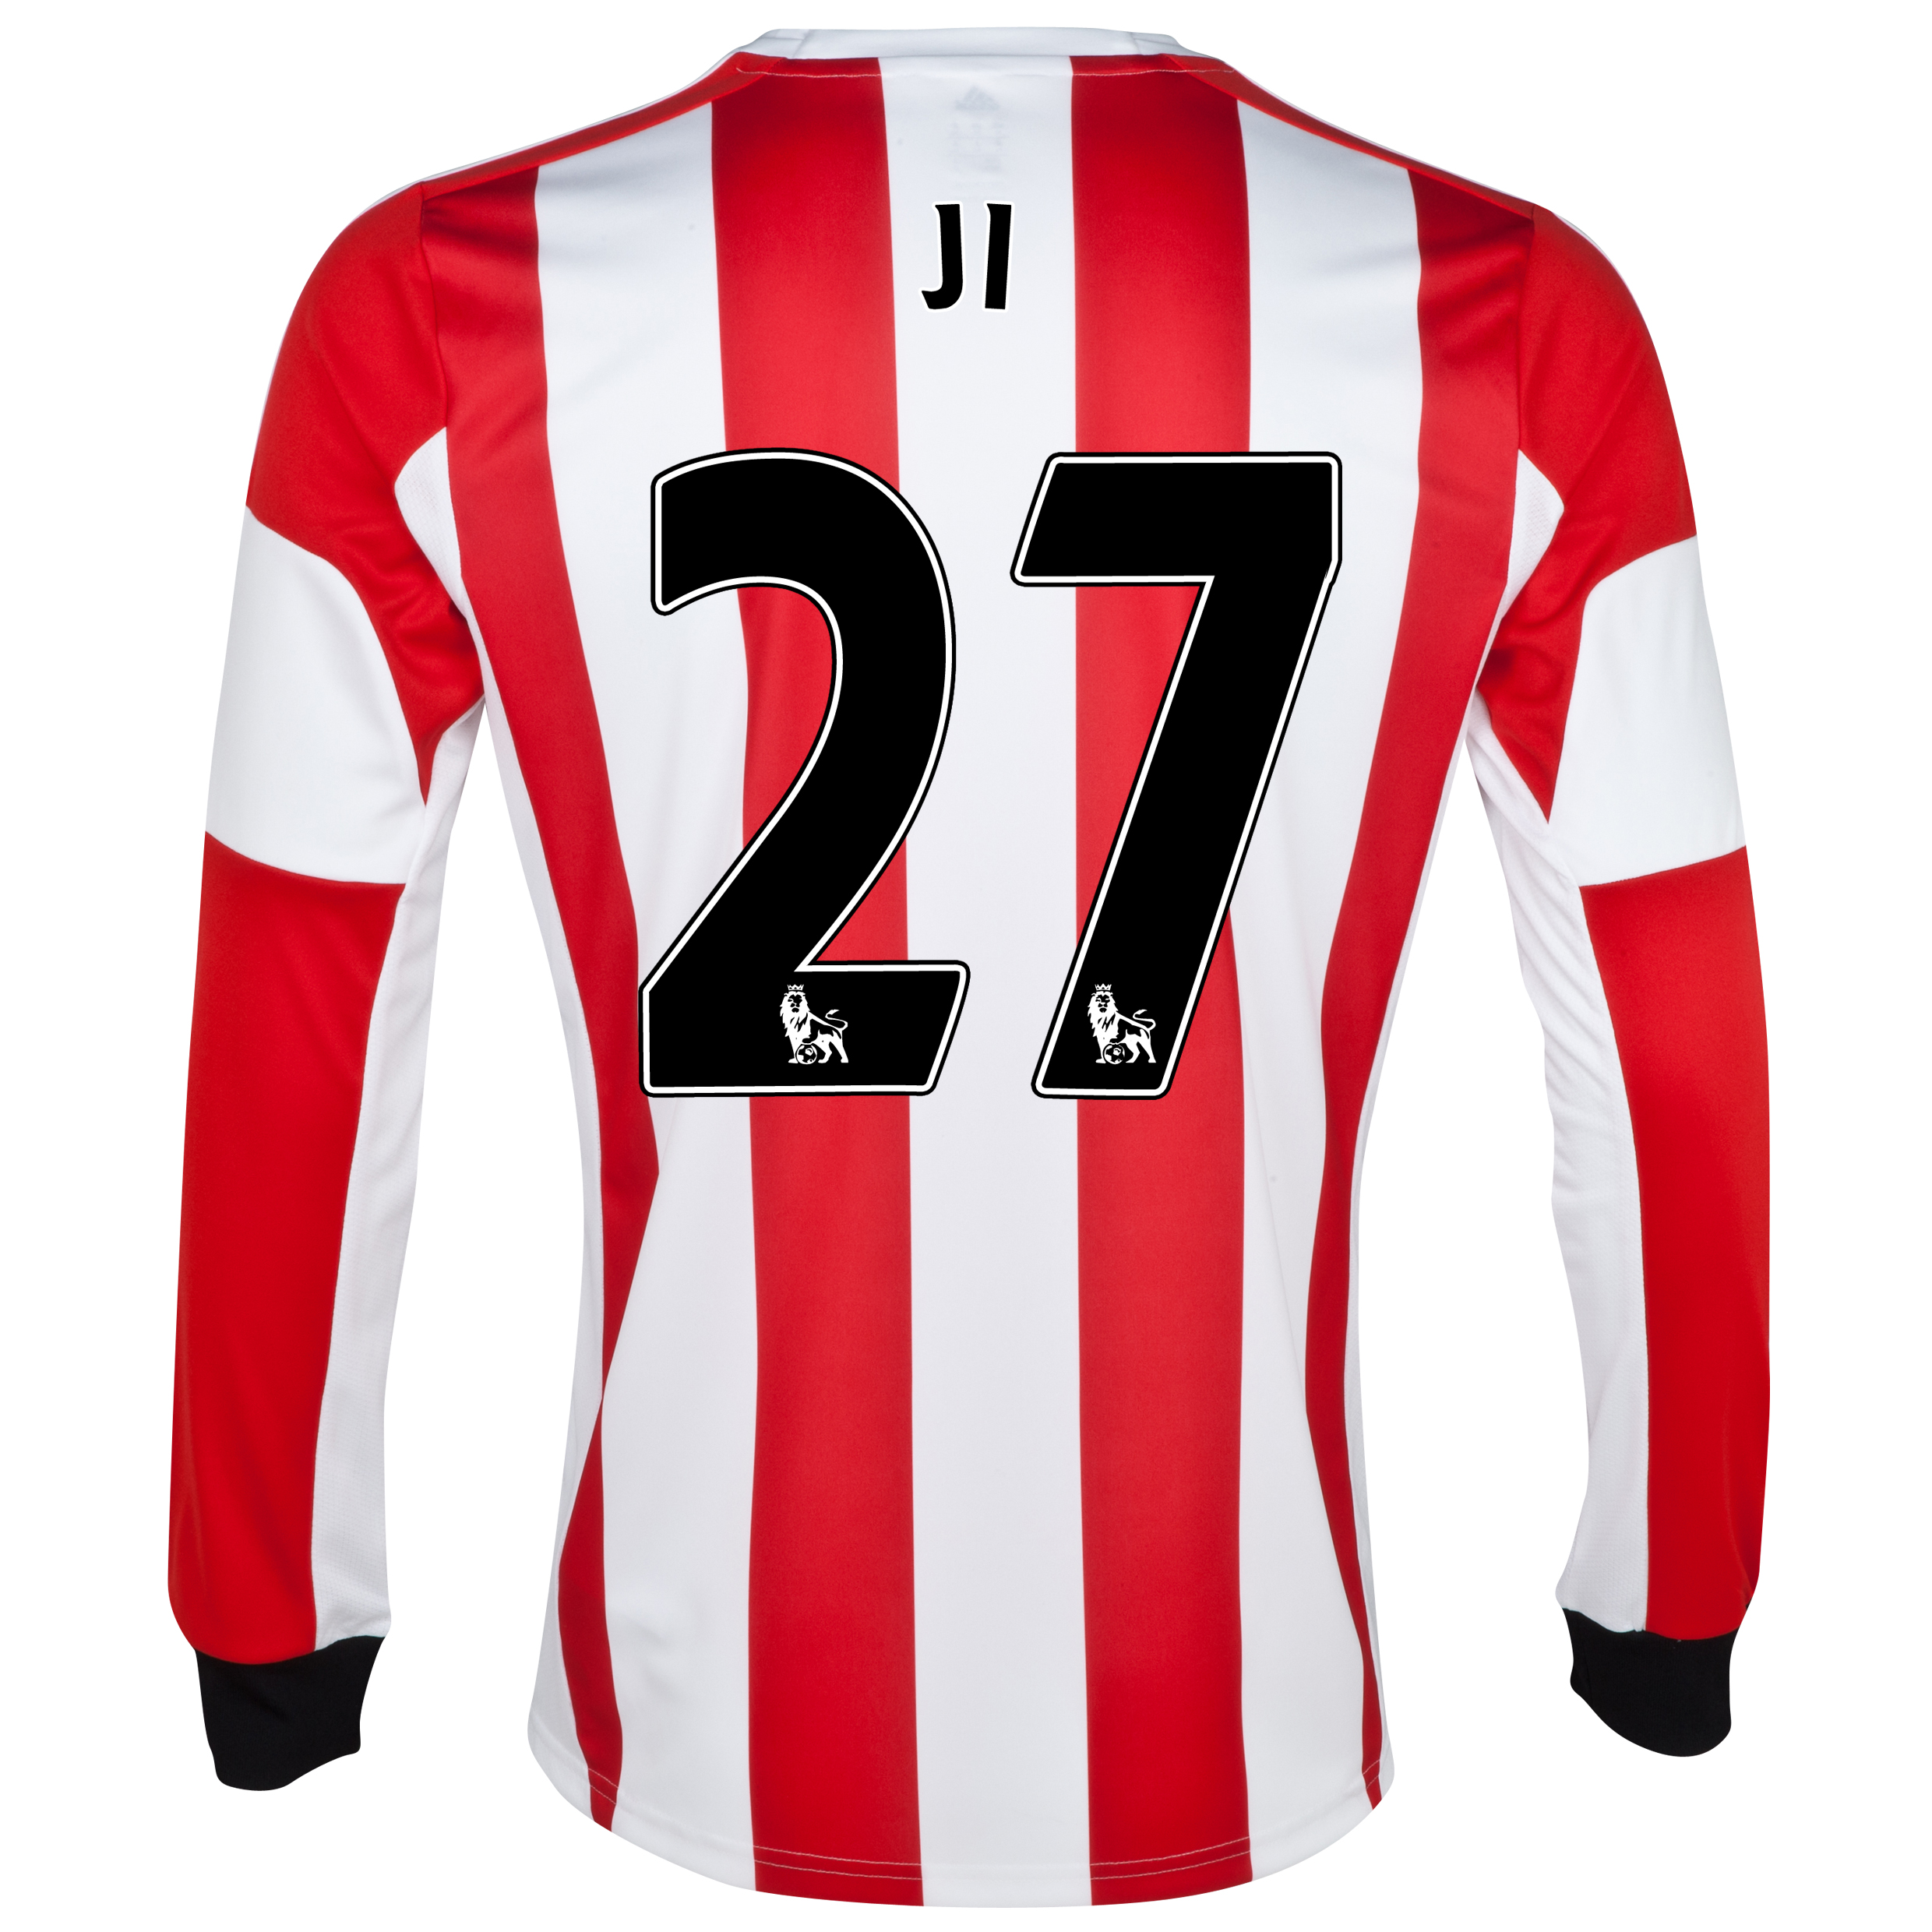 Sunderland Home Shirt 2013/14 - Long Sleeved  with Ji 27 printing